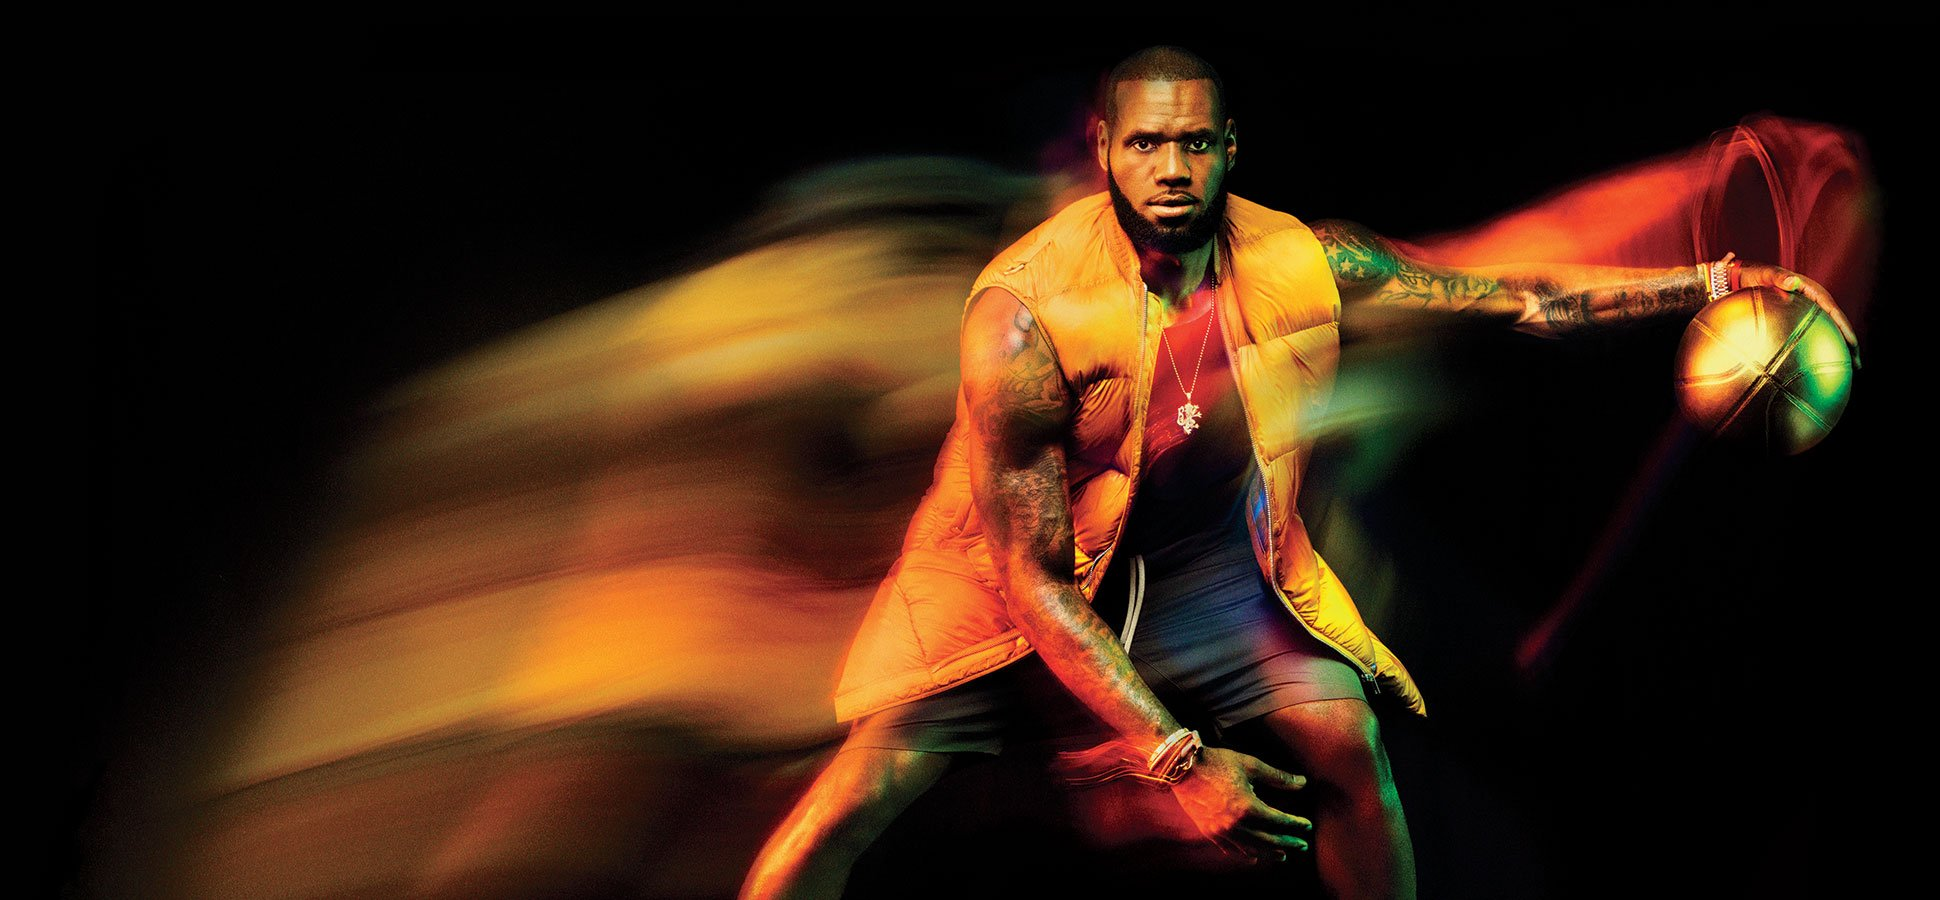 45727ee83cd How Science Helps Age-Defying Athletes Like LeBron James and Serena  Williams Stay Competitive